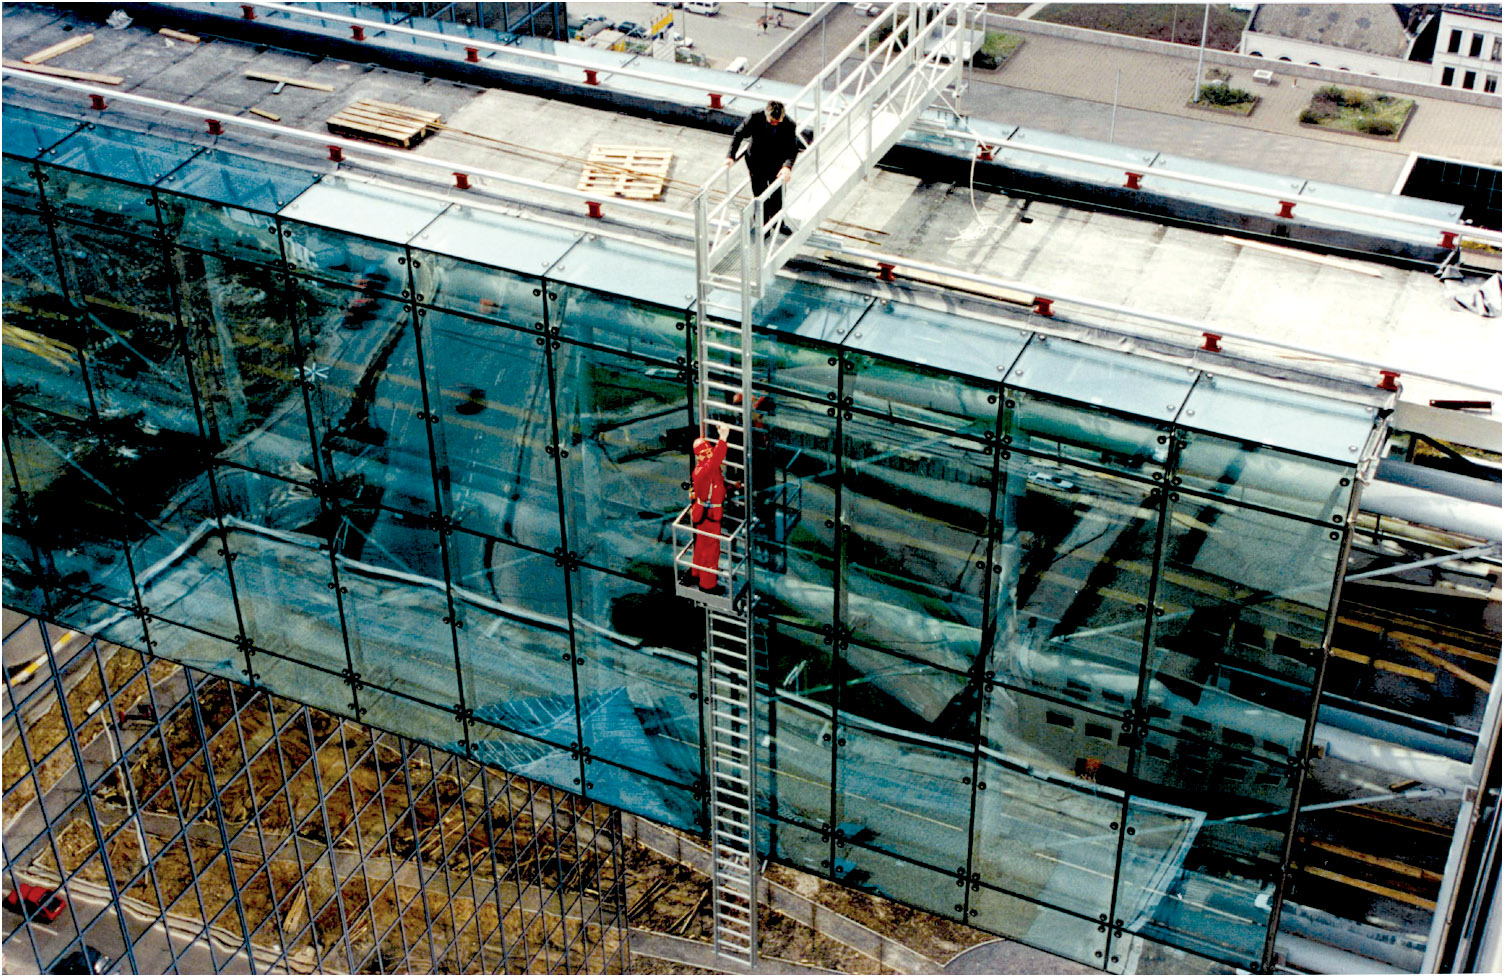 Installation of aa aluminum workplatform and ladders